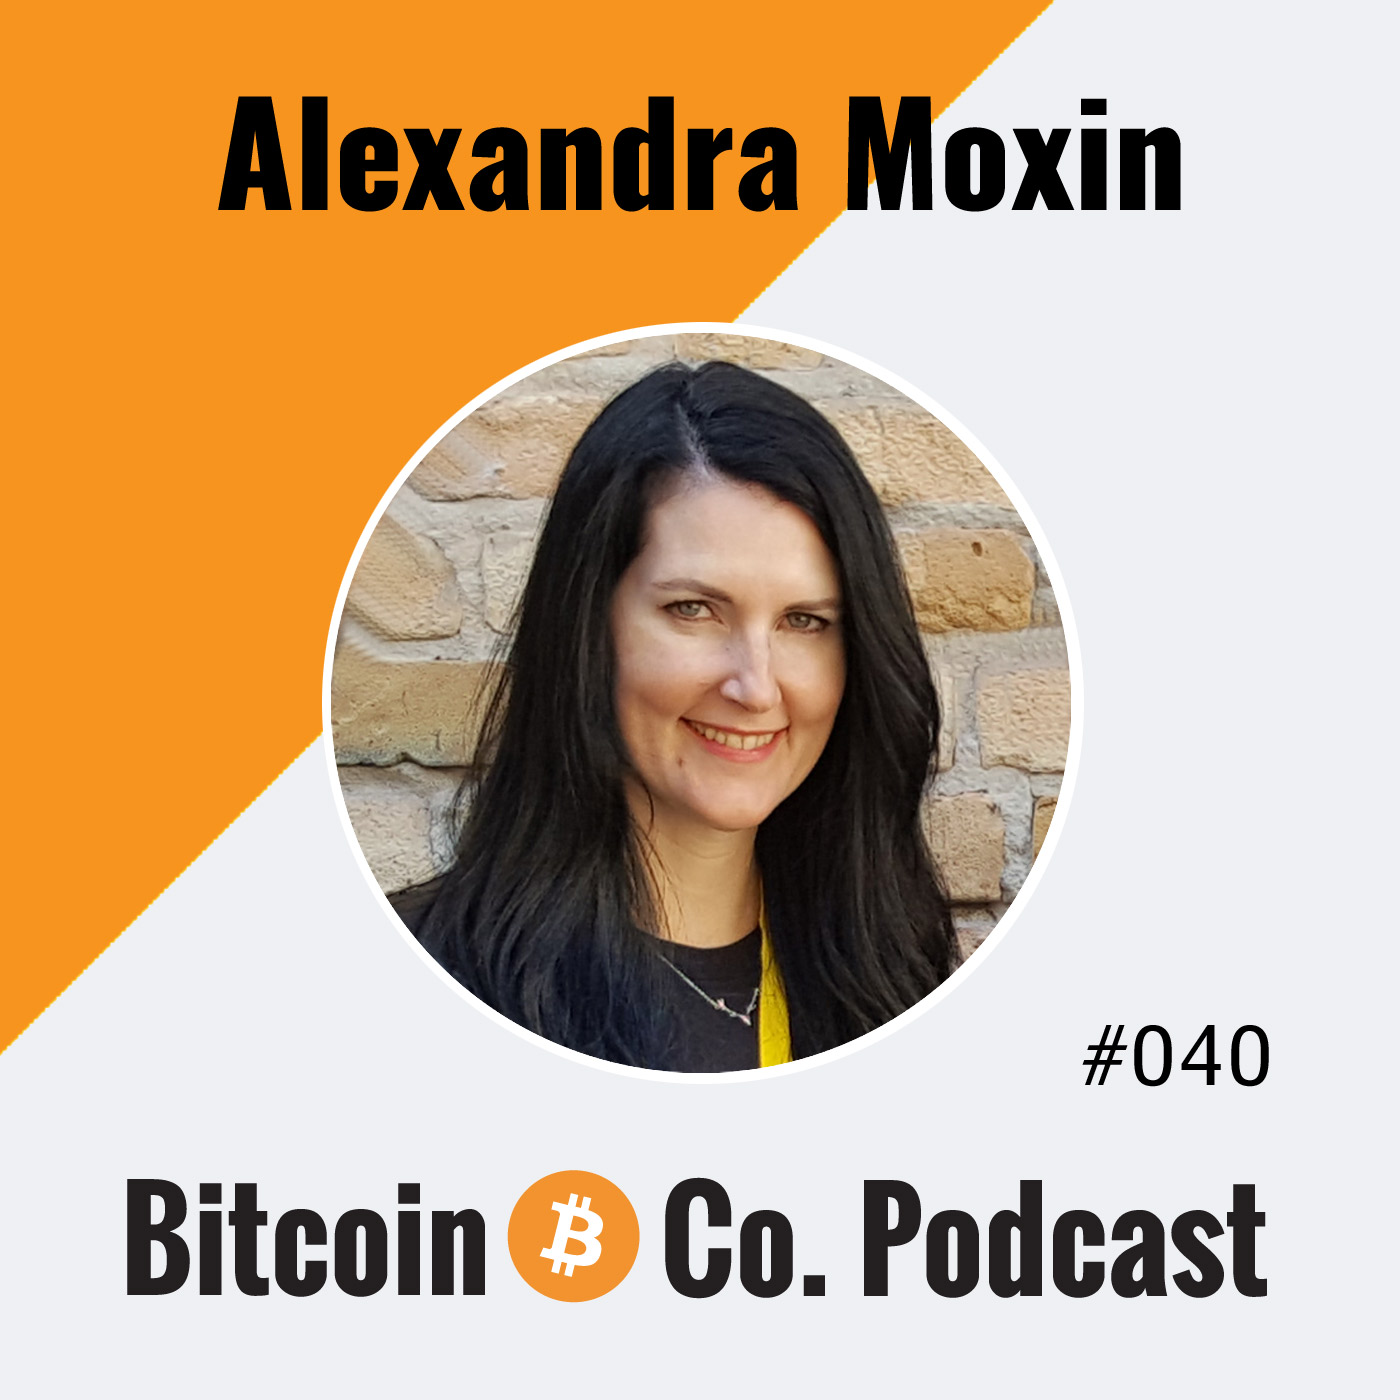 Alexandra Moxin: Bitcoin Changes the Power Dynamic – Back to the Individual